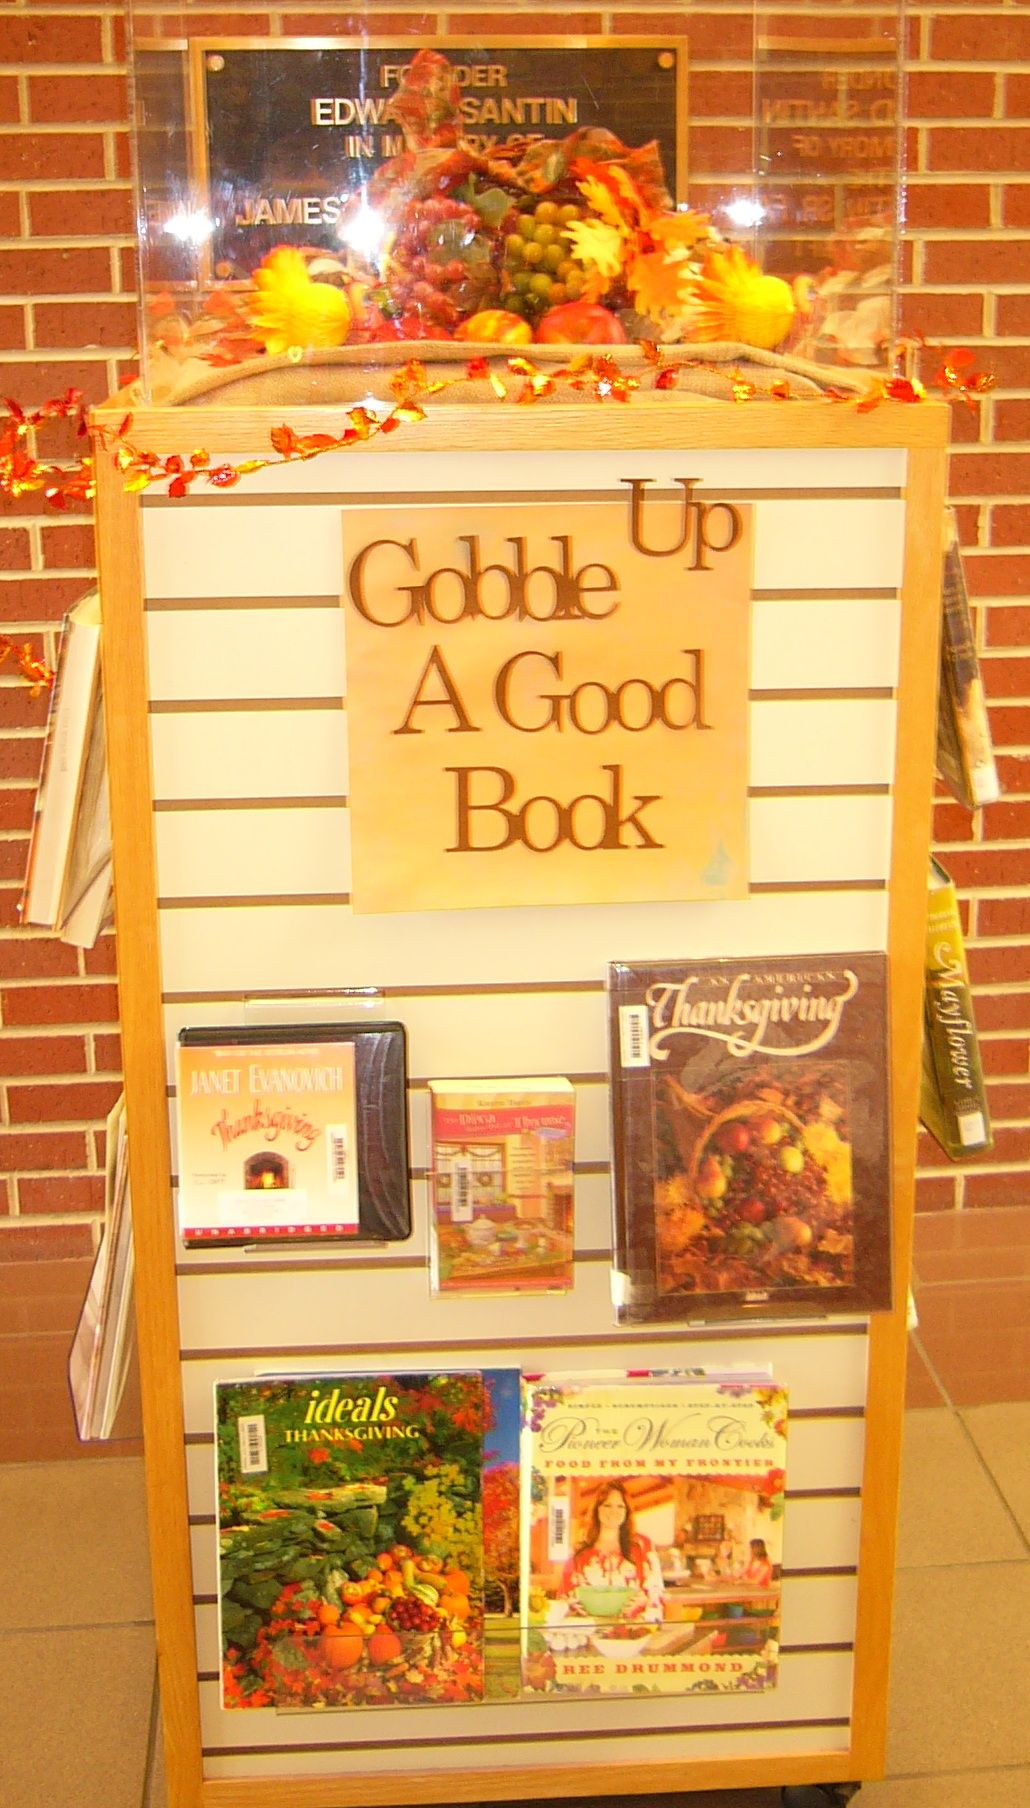 Gobble Up a Good Book - good November / Thanksgiving library bulletin board phrase